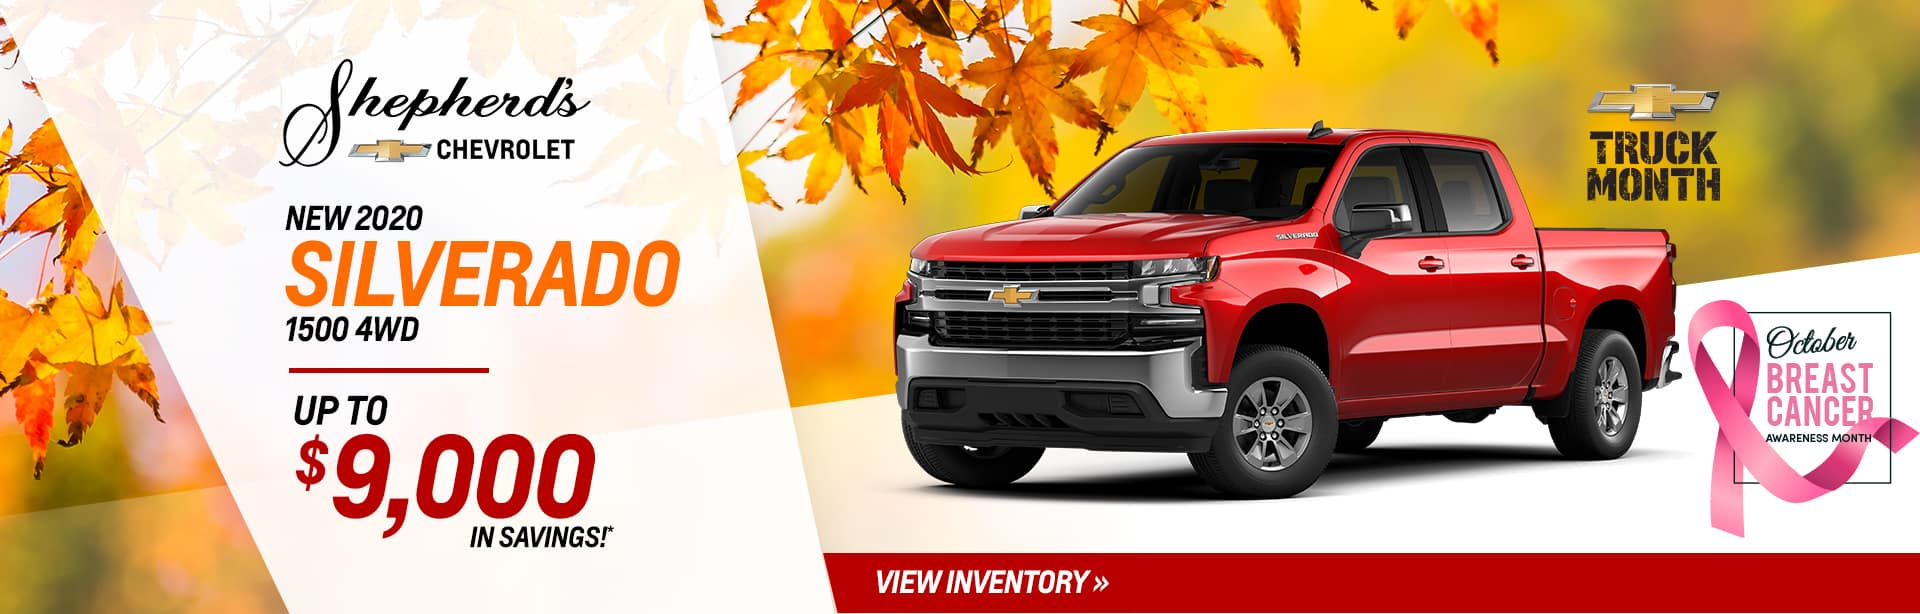 Save up to $9,000 on a new Silverado near Marion, Indiana